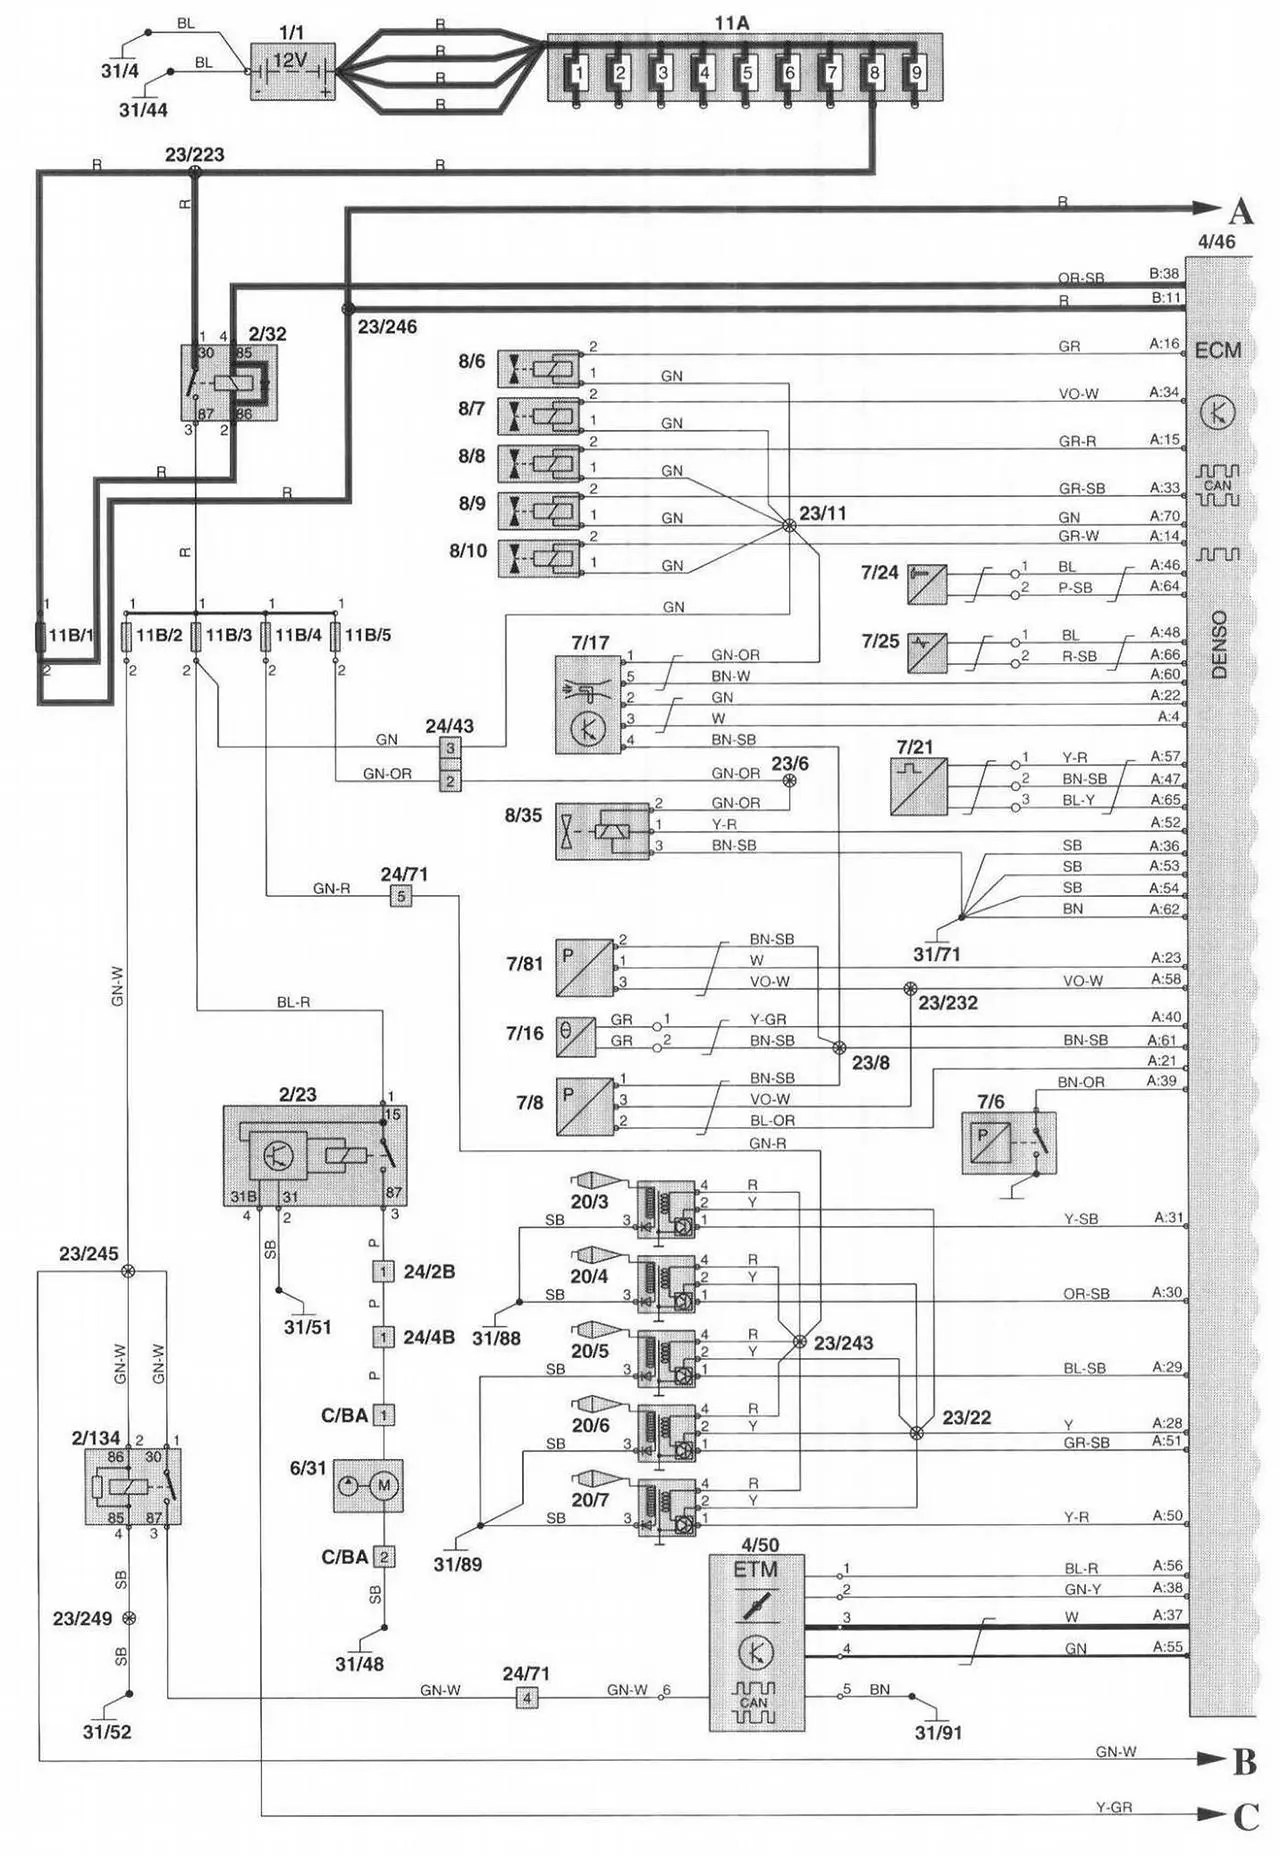 hight resolution of 2004 volvo s40 fuse diagram wiring diagram used2004 volvo s40 fuse diagram wiring diagram go 2004